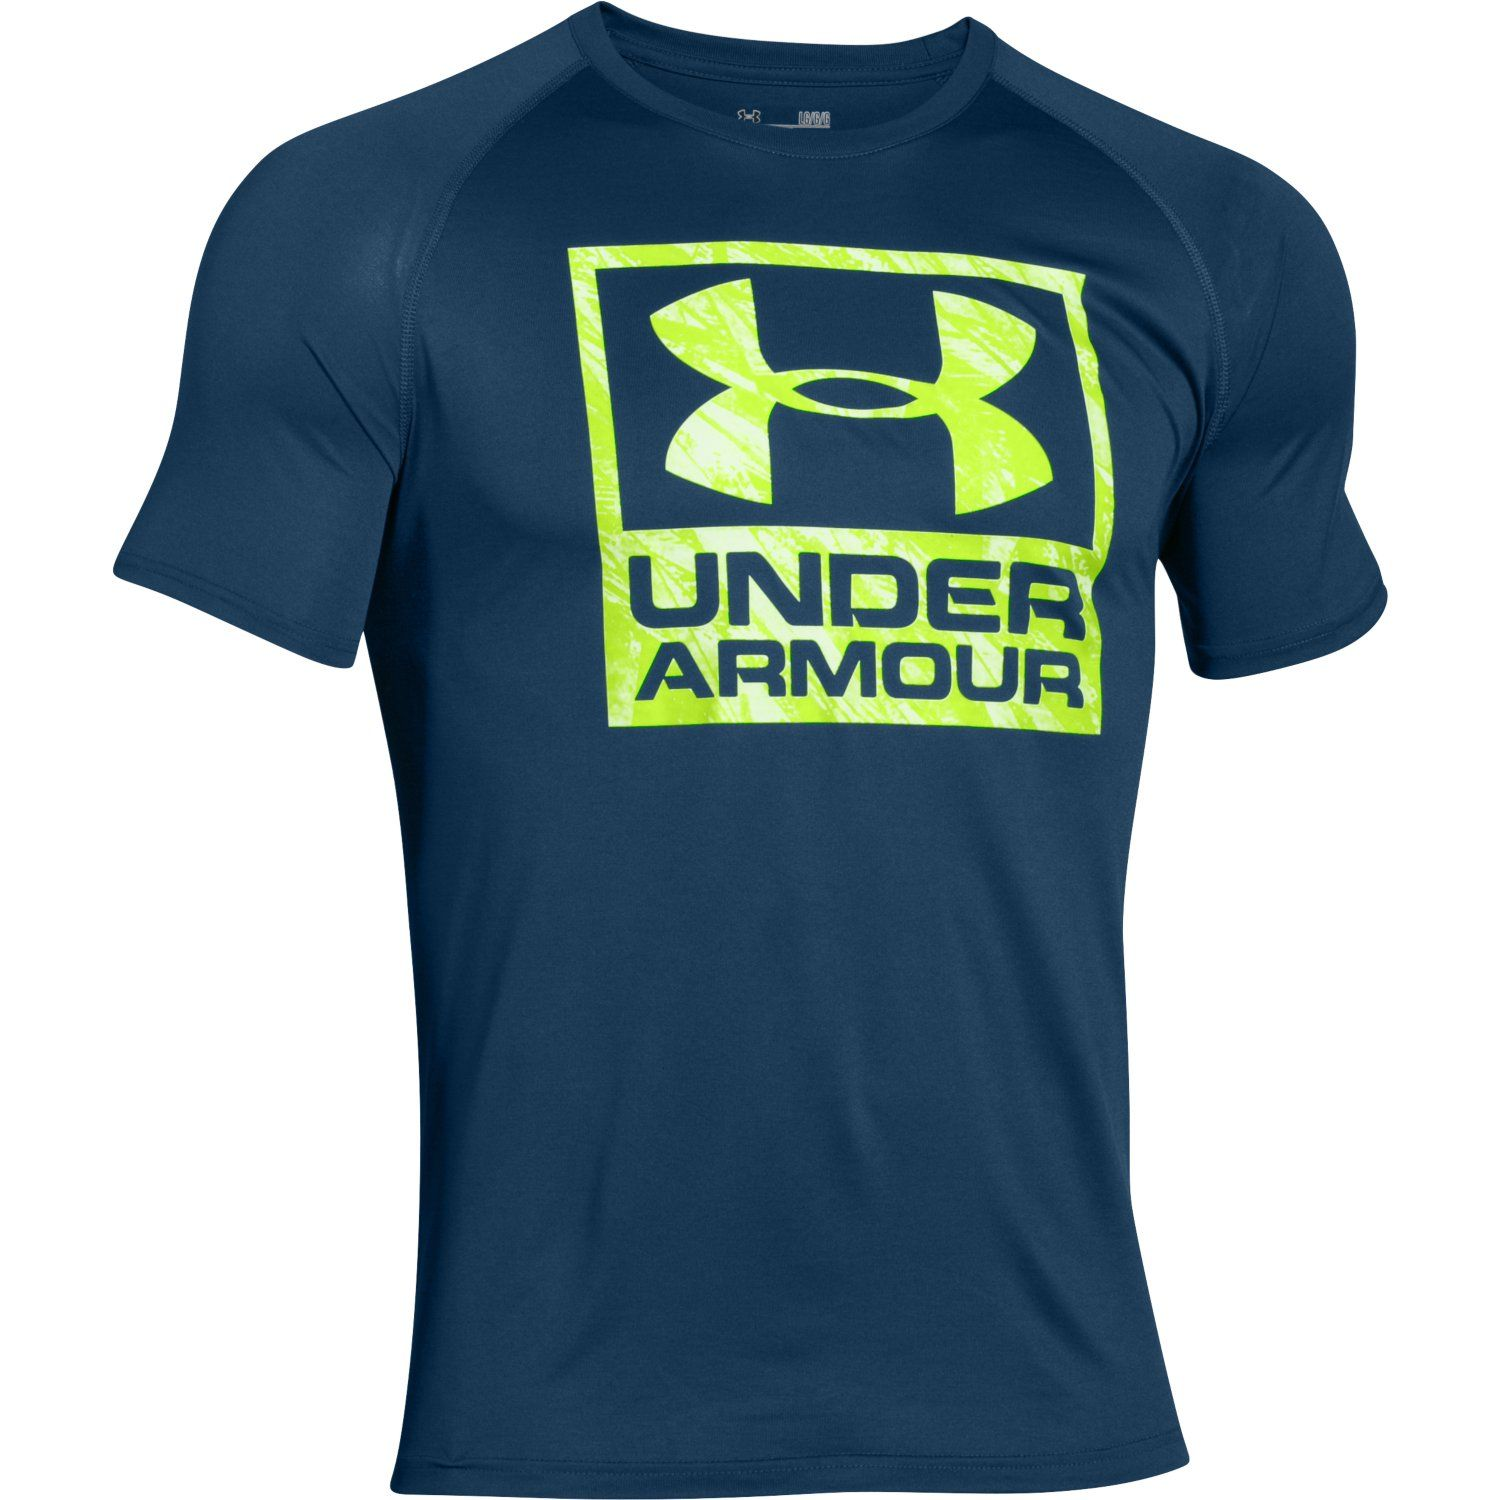 Mic s Body Shop Angebote UNDER ARMOUR Herren T-Shirt Shatter Records MIhr  QuickBerater  d2cb97312a0